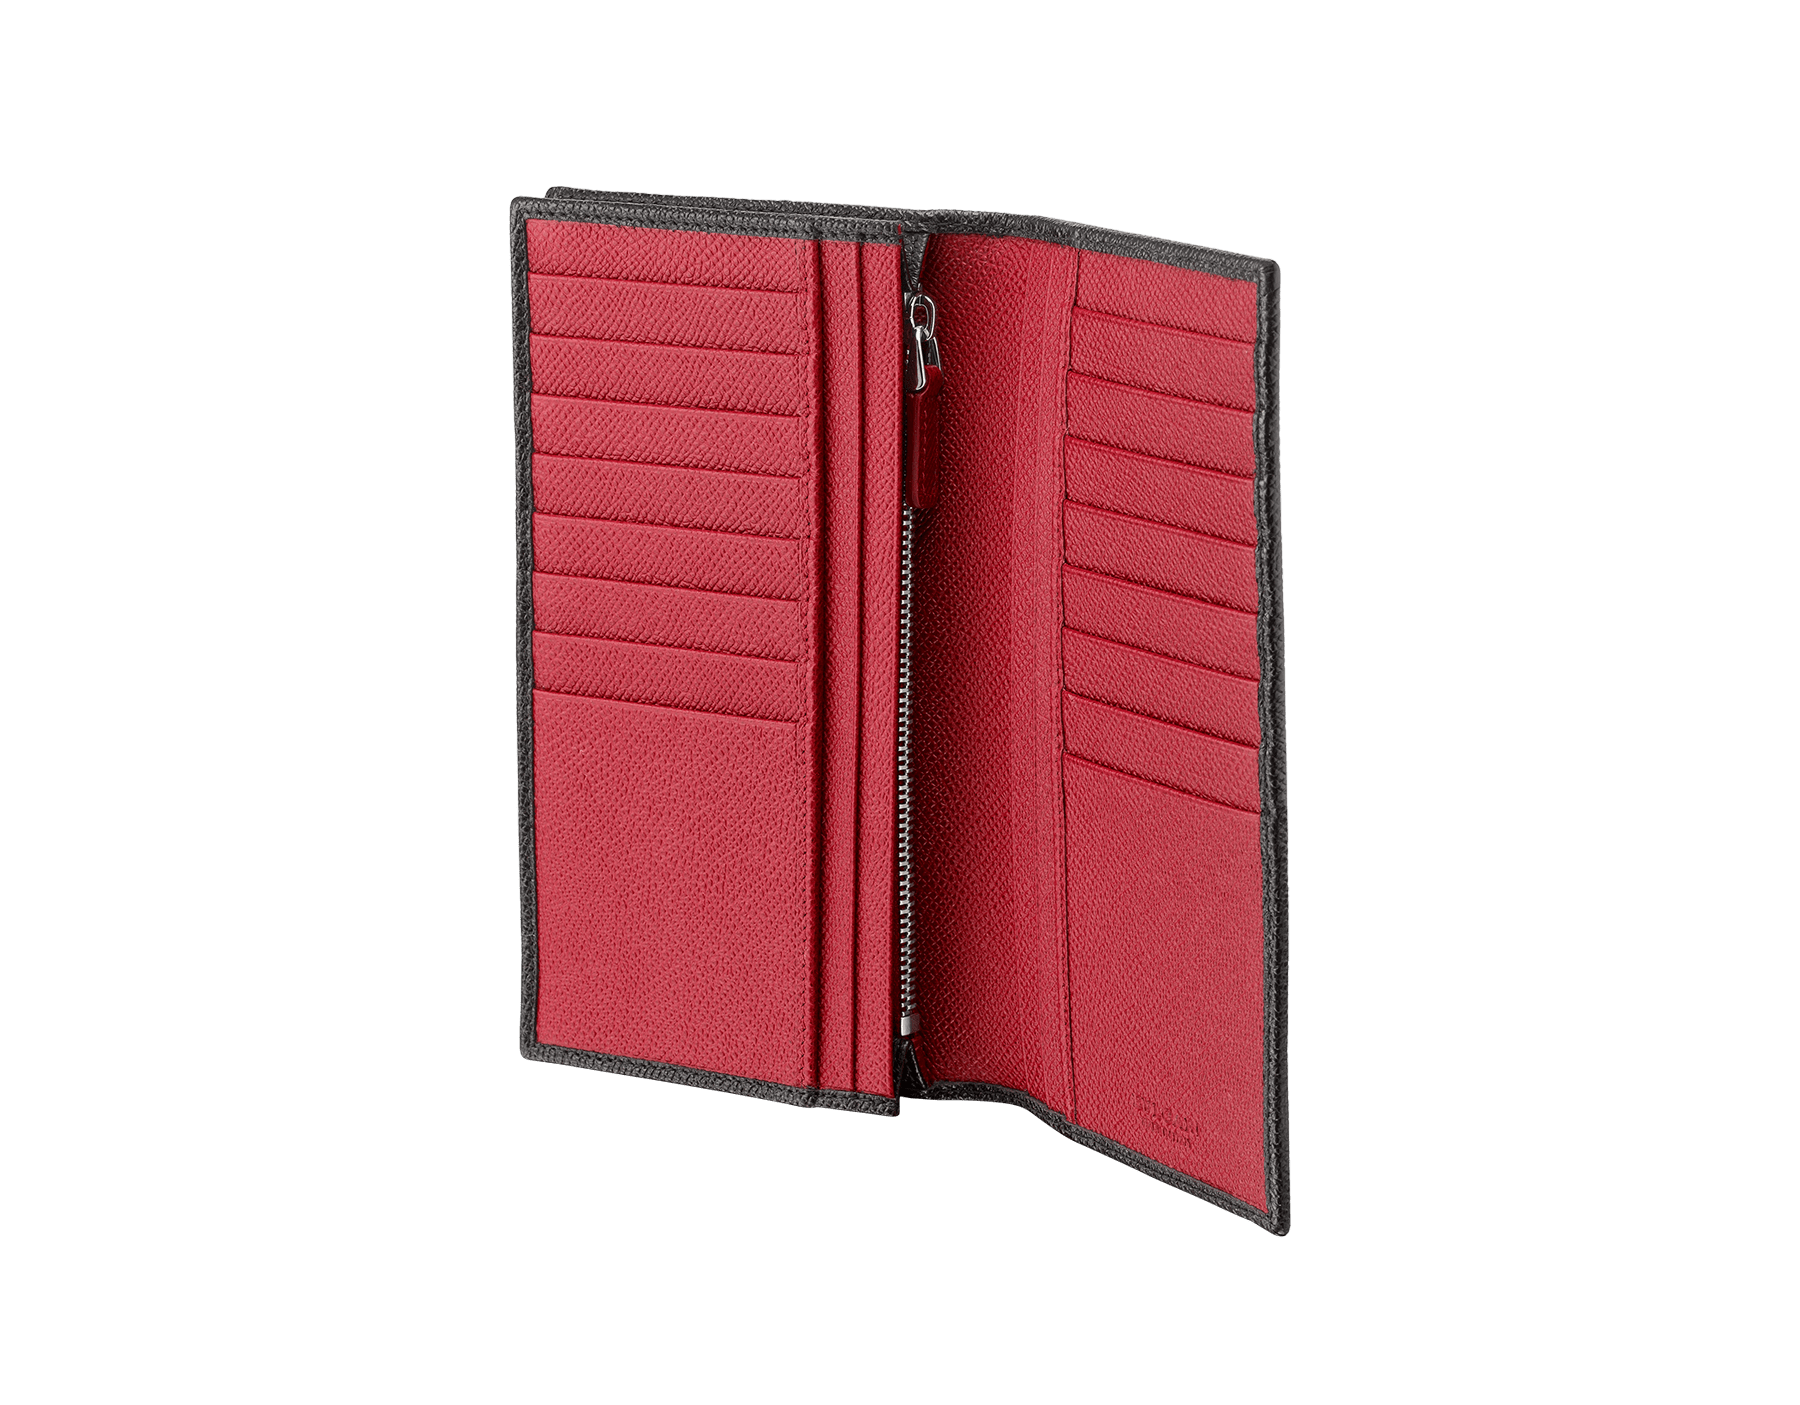 BVLGARI BVLGARI man wallet for yen in black and ruby dahlia grain calf leather and black nappa lining. Iconic logo décor in palladium plated brass. 288257 image 2